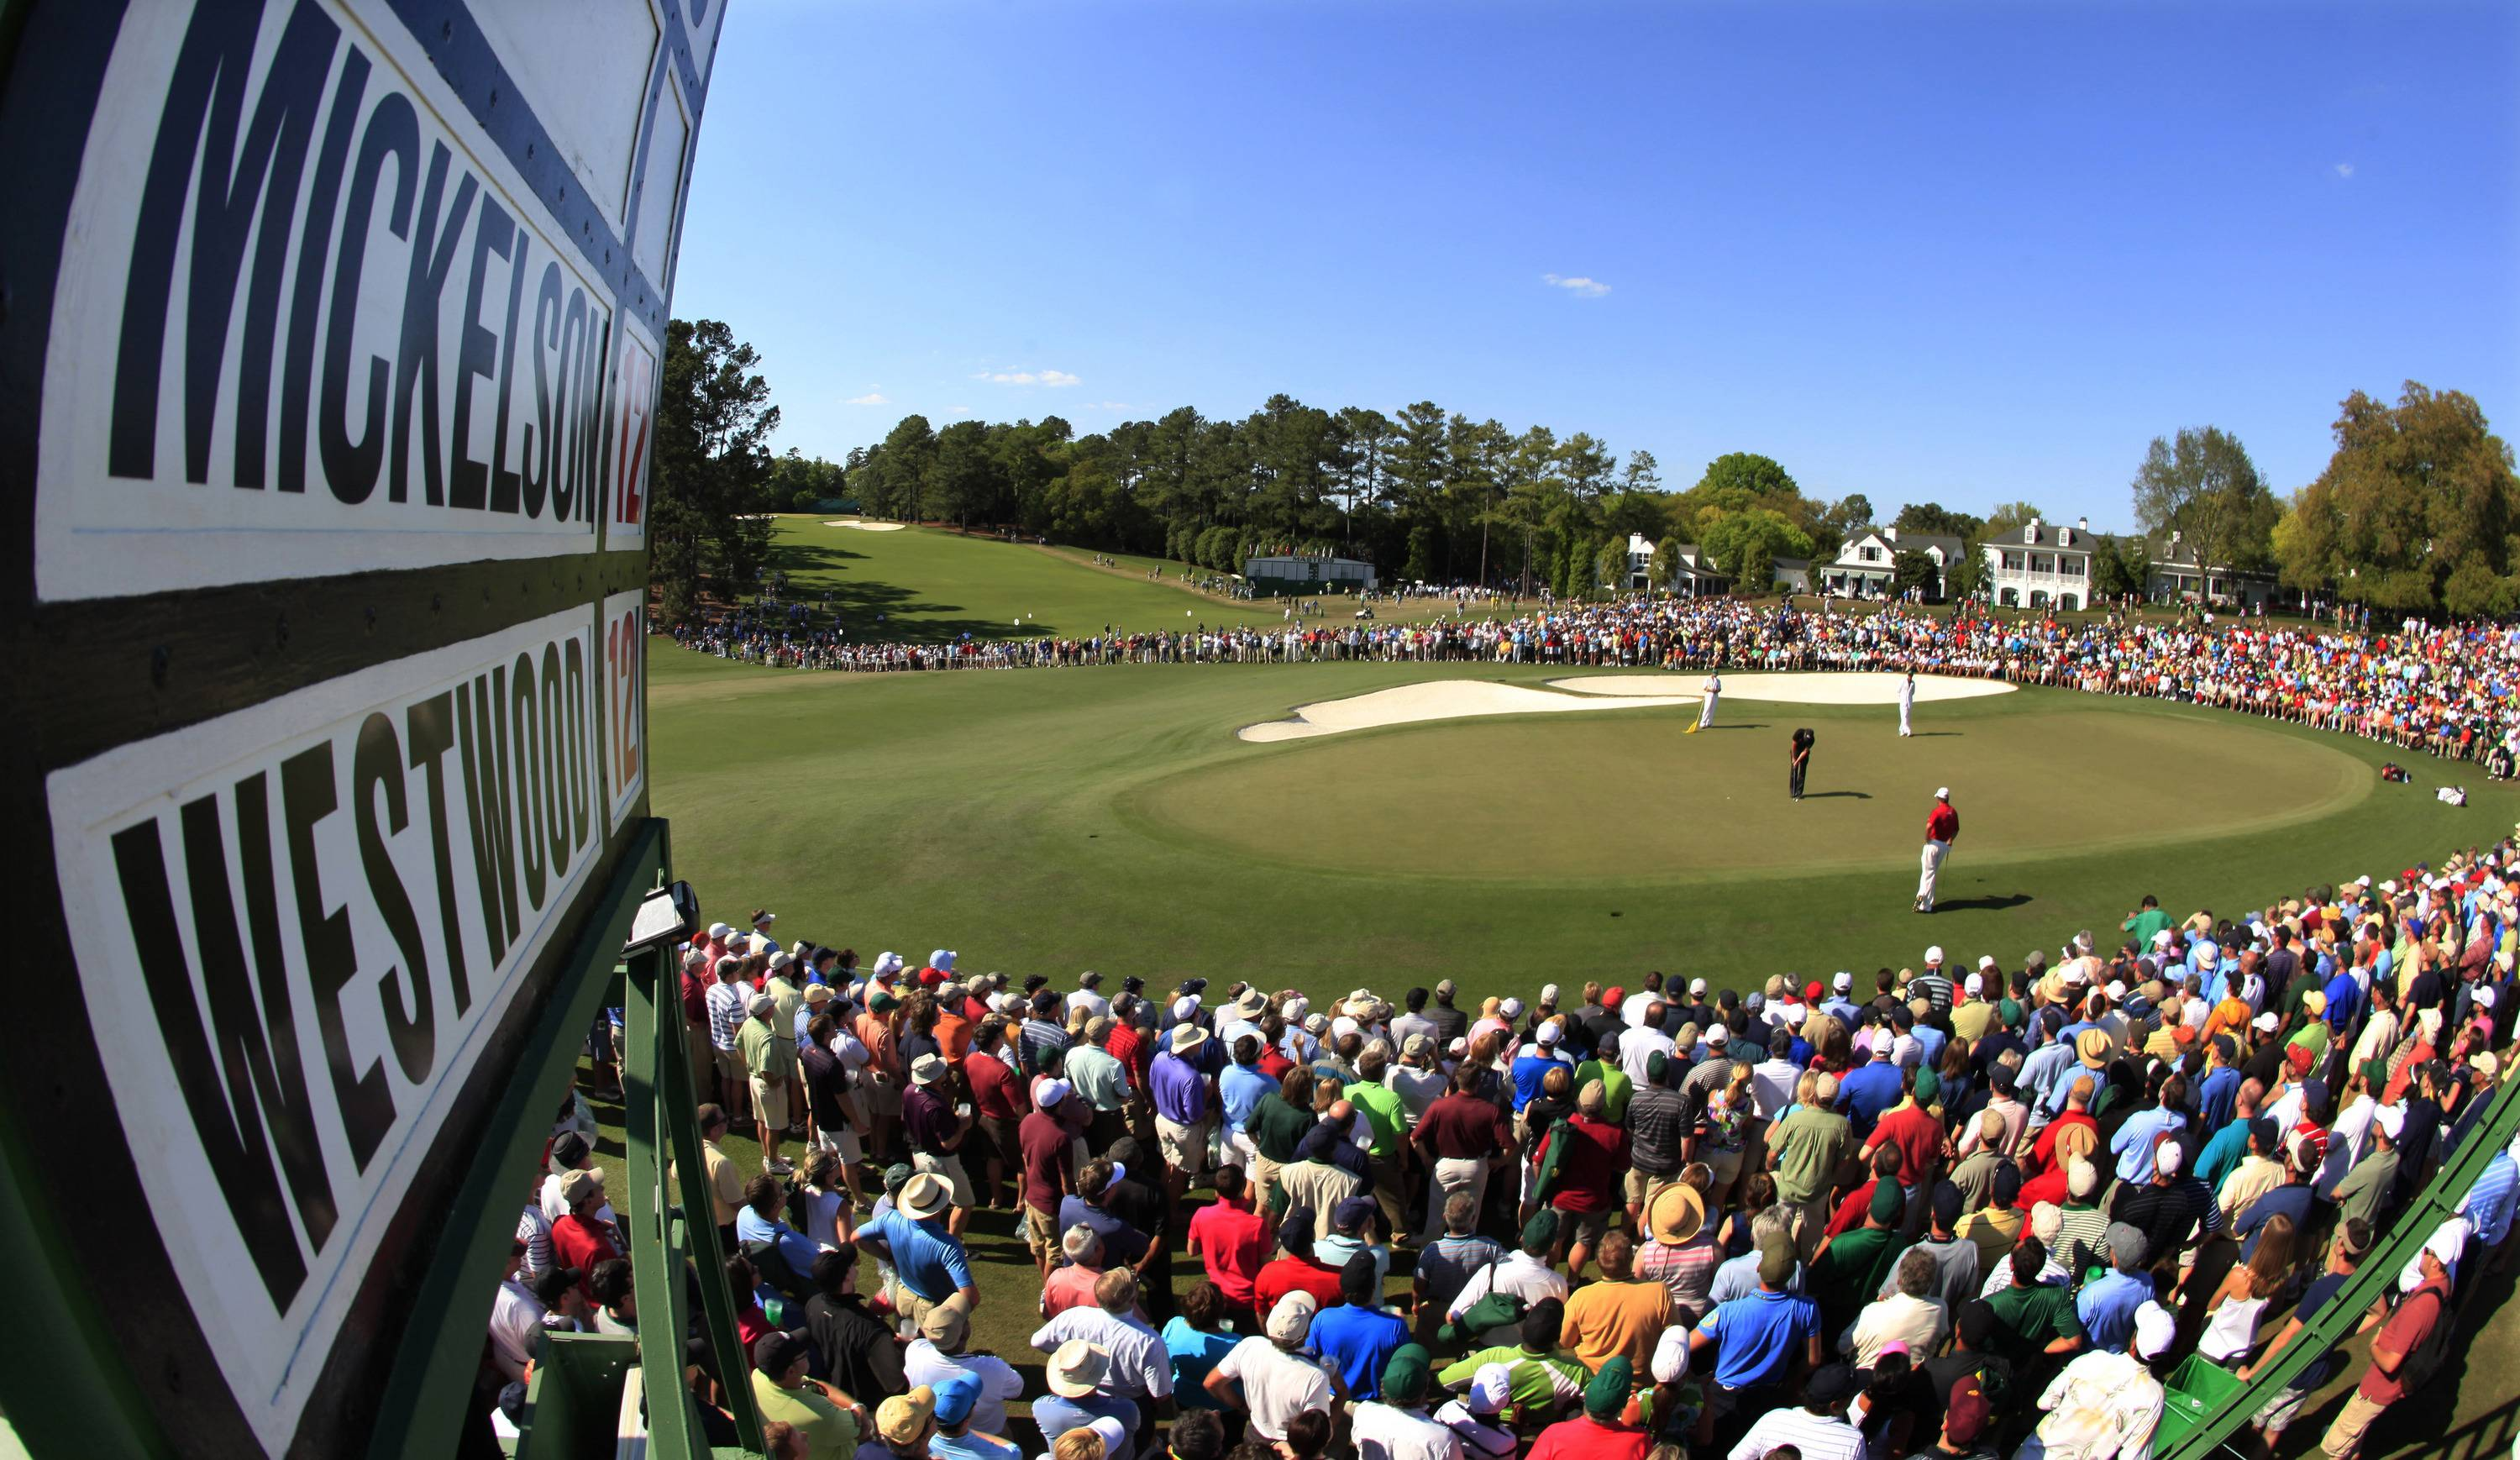 Lee Westwood, right, of England watches as Phil Mickelson putts on the ninth green during the final round of the Masters.